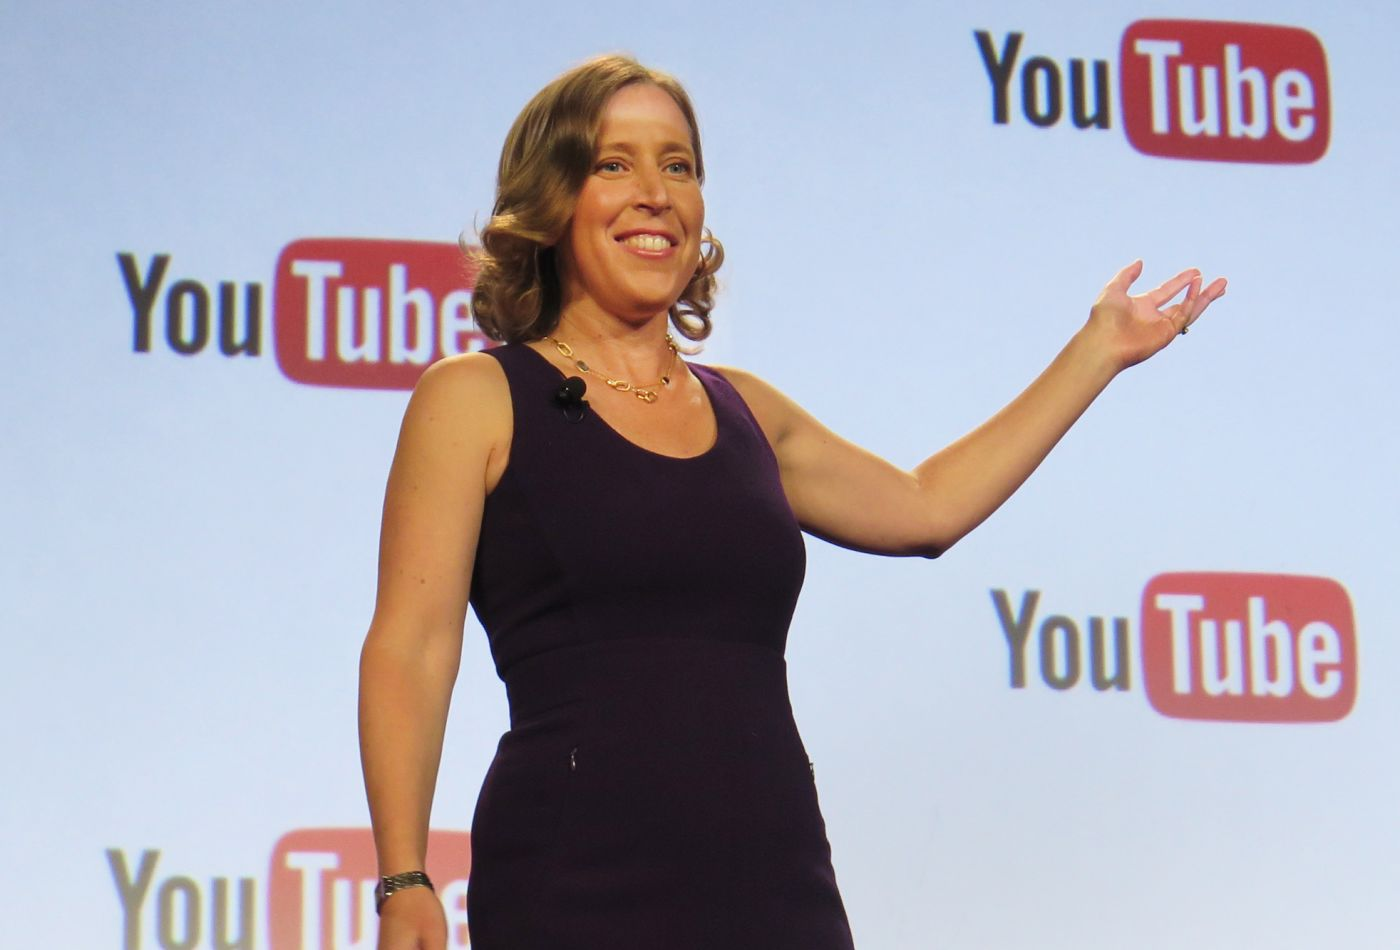 Youtube CEO'su Susan Wojcicki'